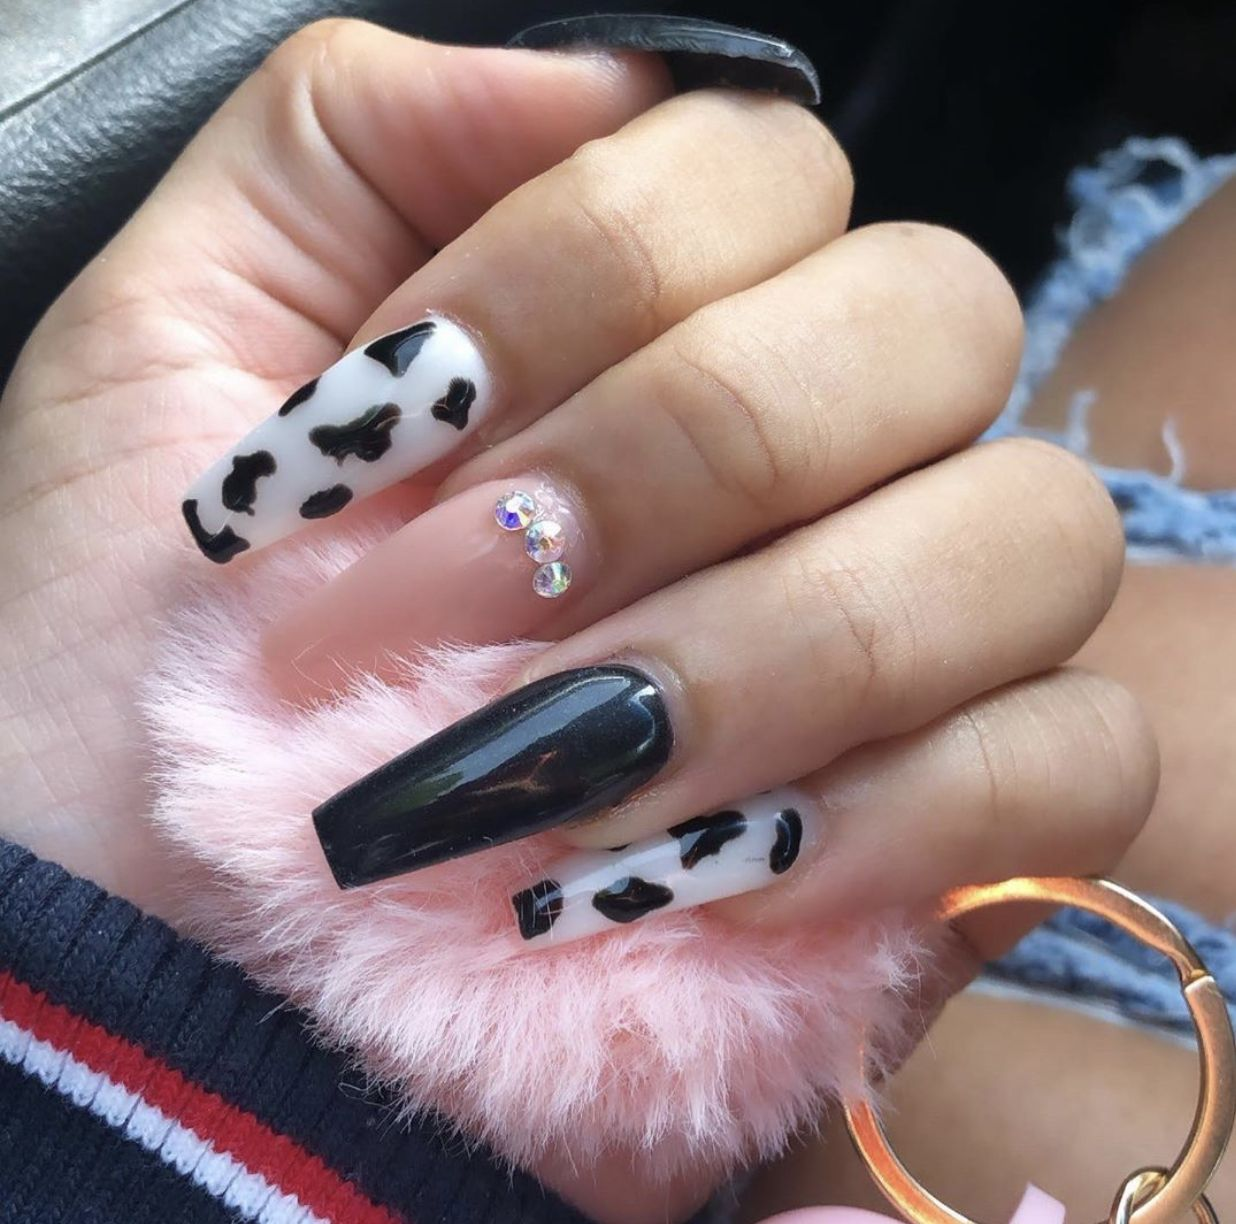 Cute Long Acrylic Coffin Acrylic Nails In 2020 Cow Nails Halloween Nails Best Acrylic Nails